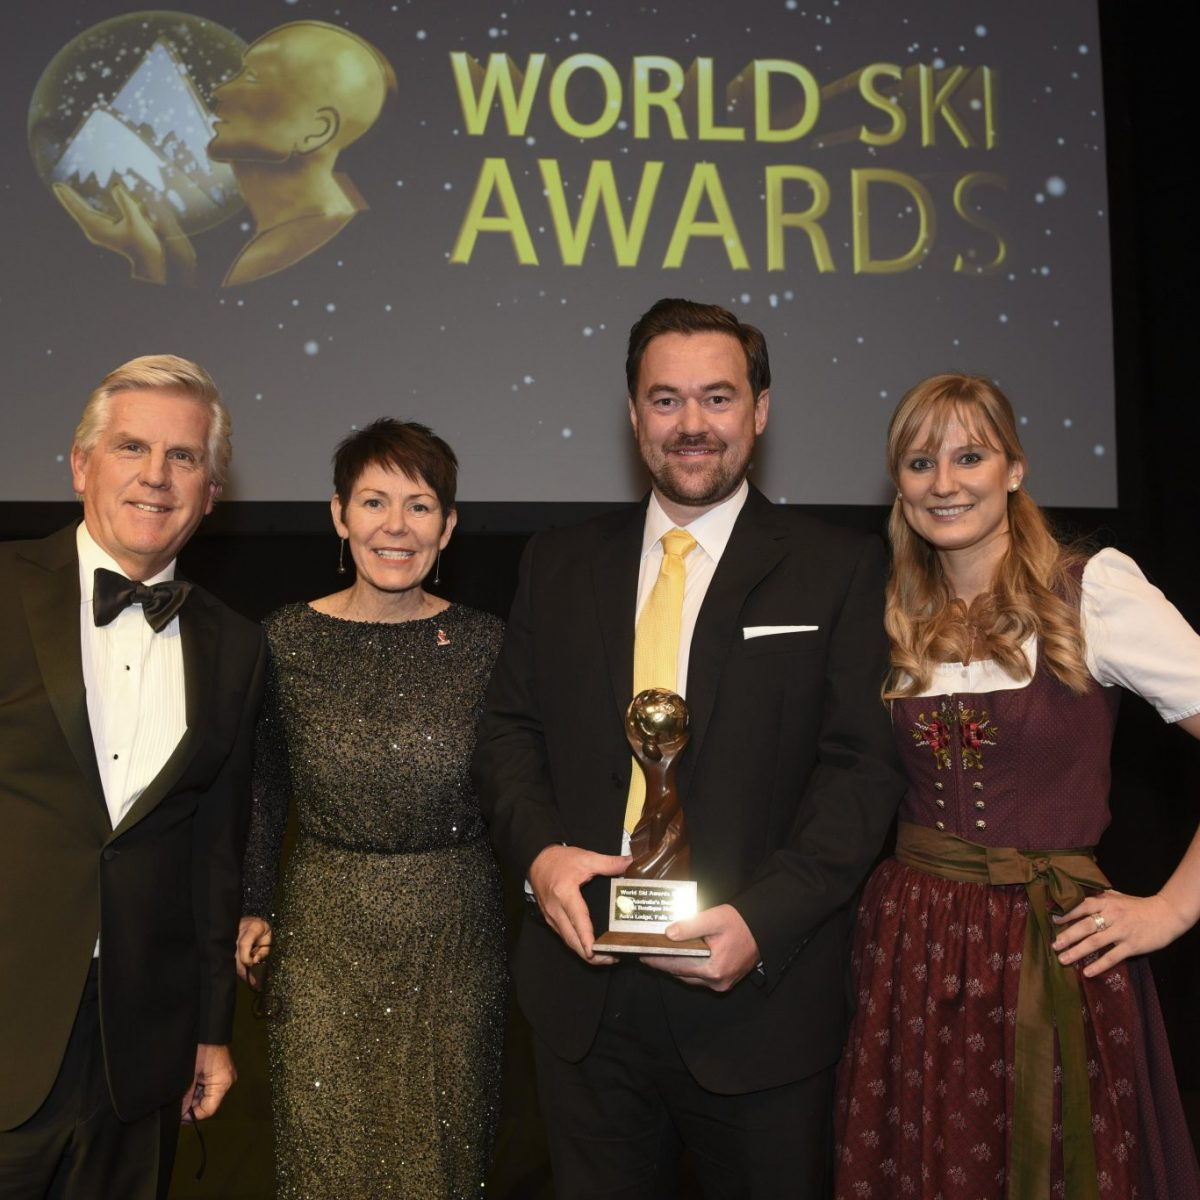 World Ski Awards winner - Australia's Best Ski Boutique Hotel 2017 - Mr Steve Rider, Mr Tom Simpson (General Manager)